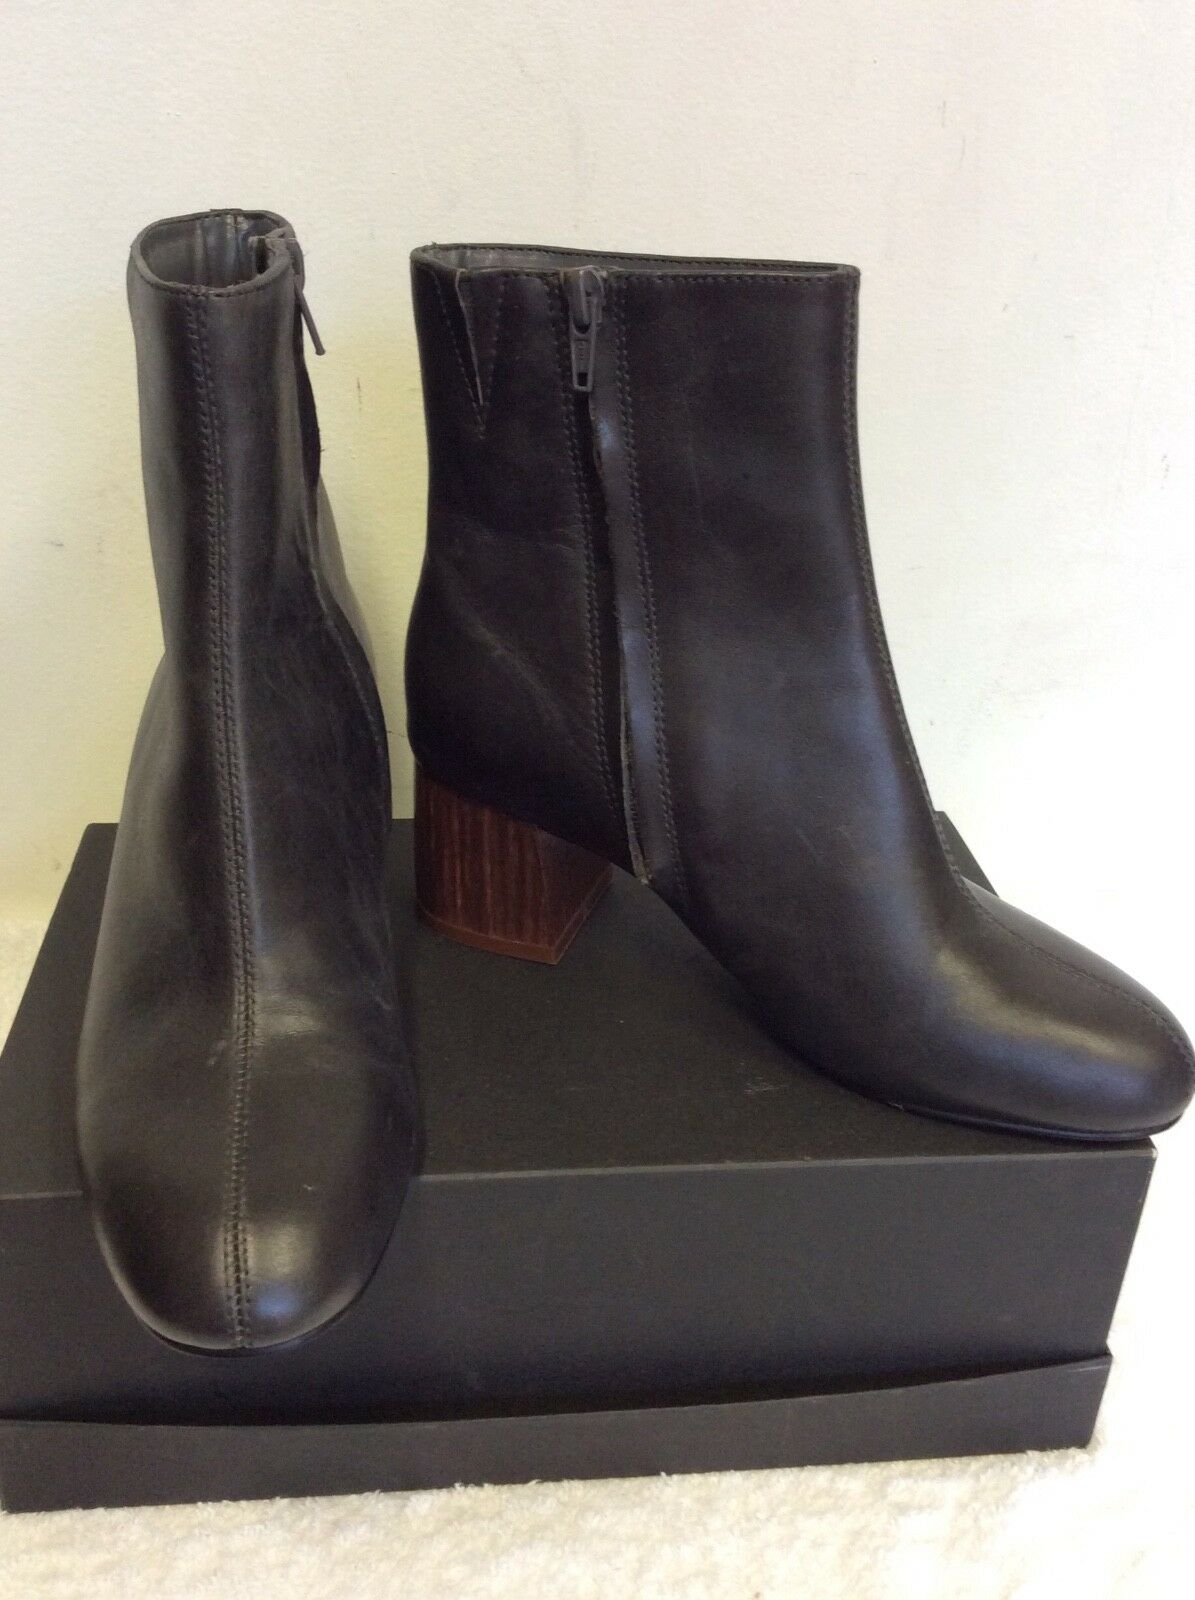 MARKS & SPENCER AUTOGRAPH CHARCOAL GREY LEATHER ANKLE BOOTS SIZE 3 35.5 RRP